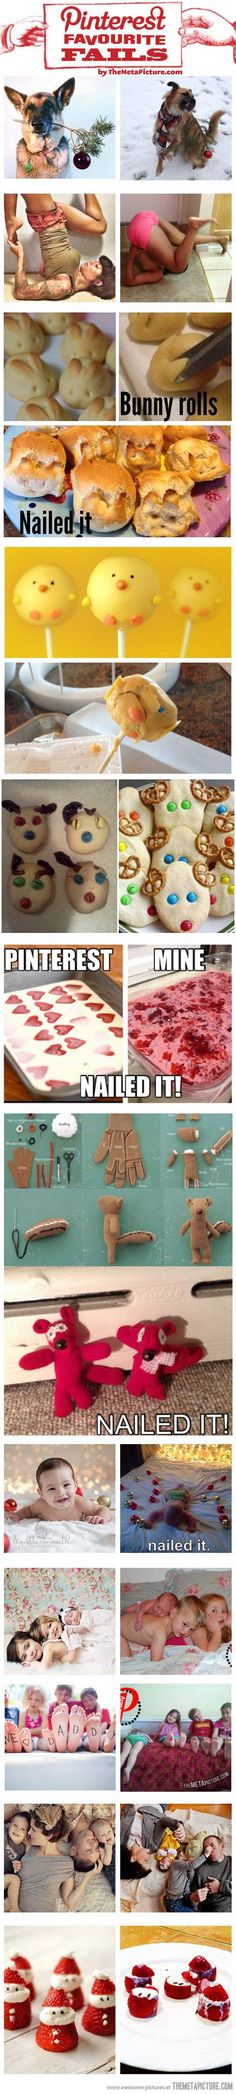 Pinterest gone wrong…